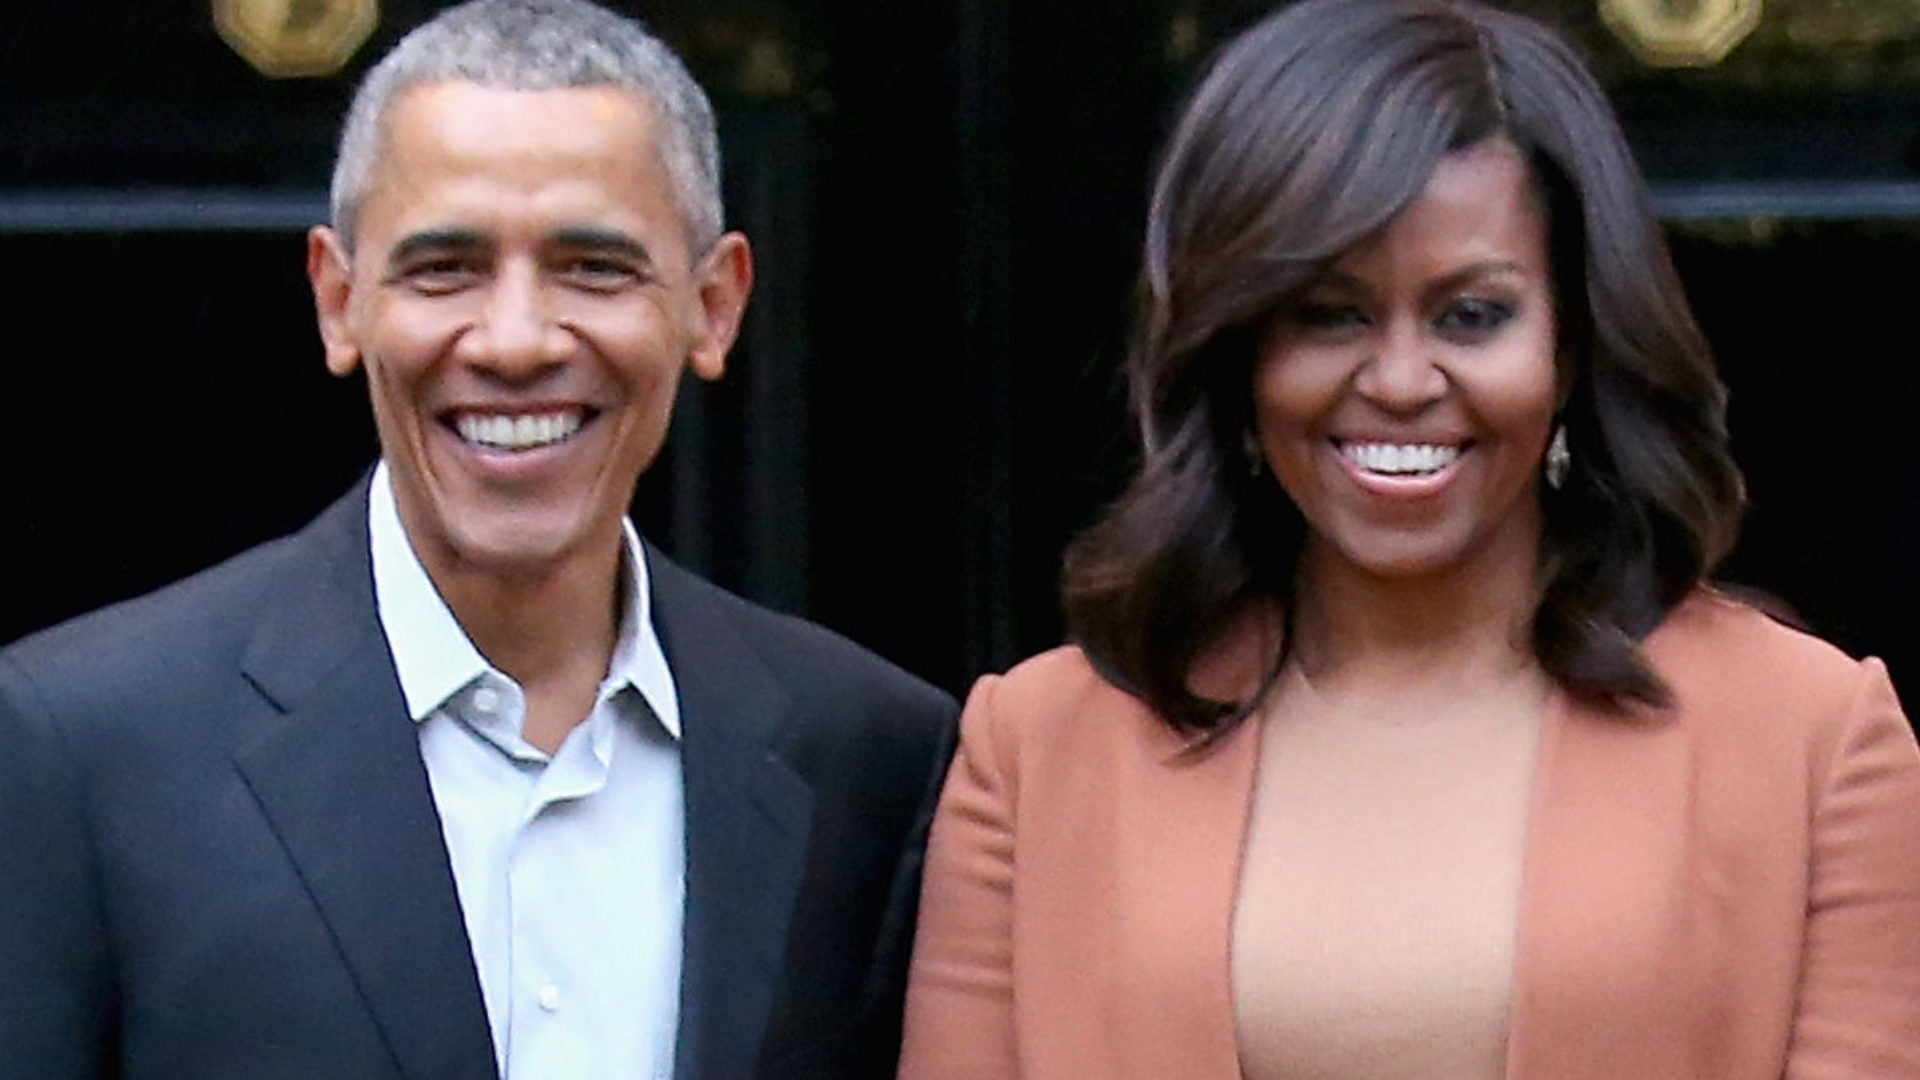 Barack and Michelle Obama Sign Storytelling Deal With Netflix